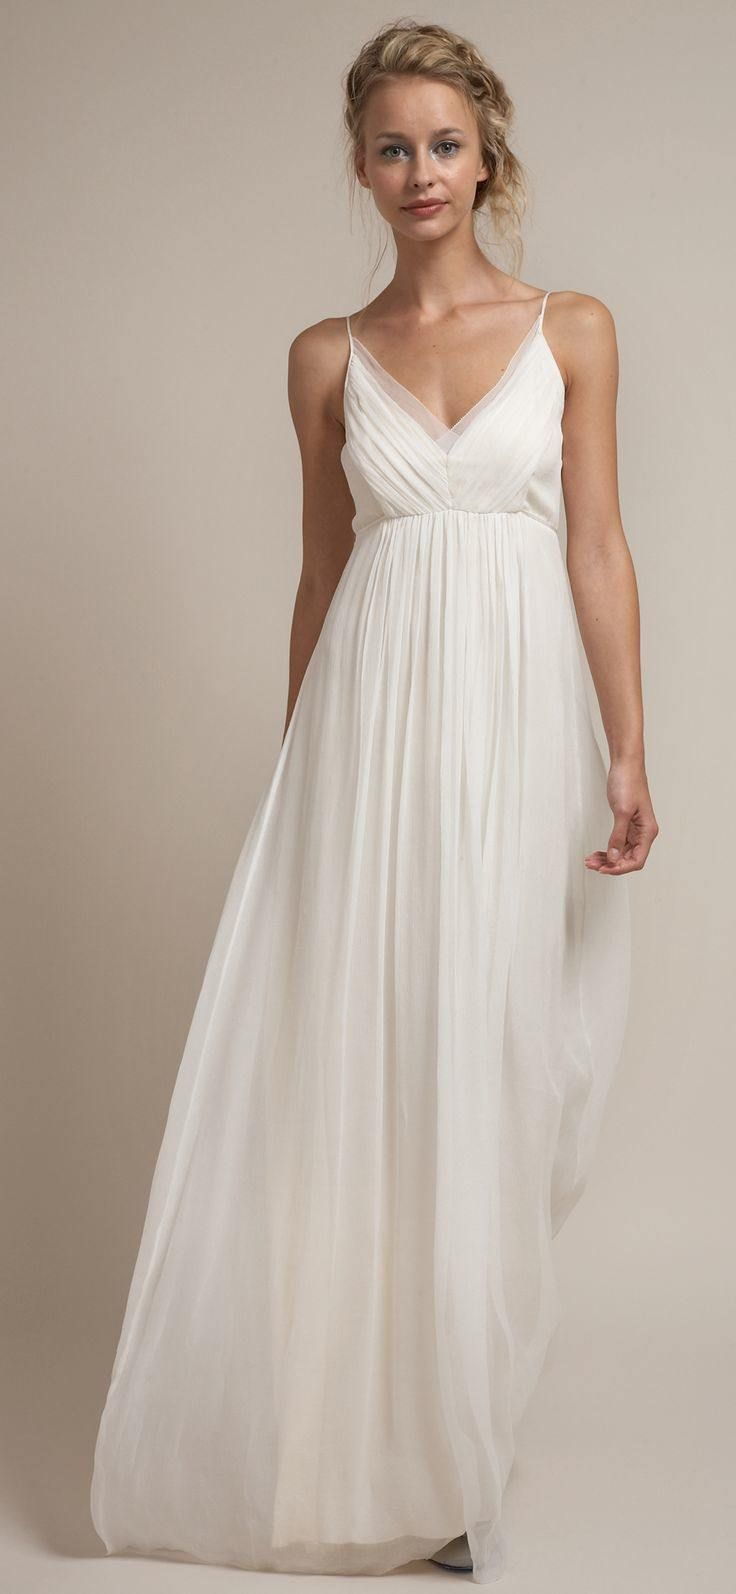 Casual Dresses for A Wedding - Best Shapewear for Wedding Dress ...